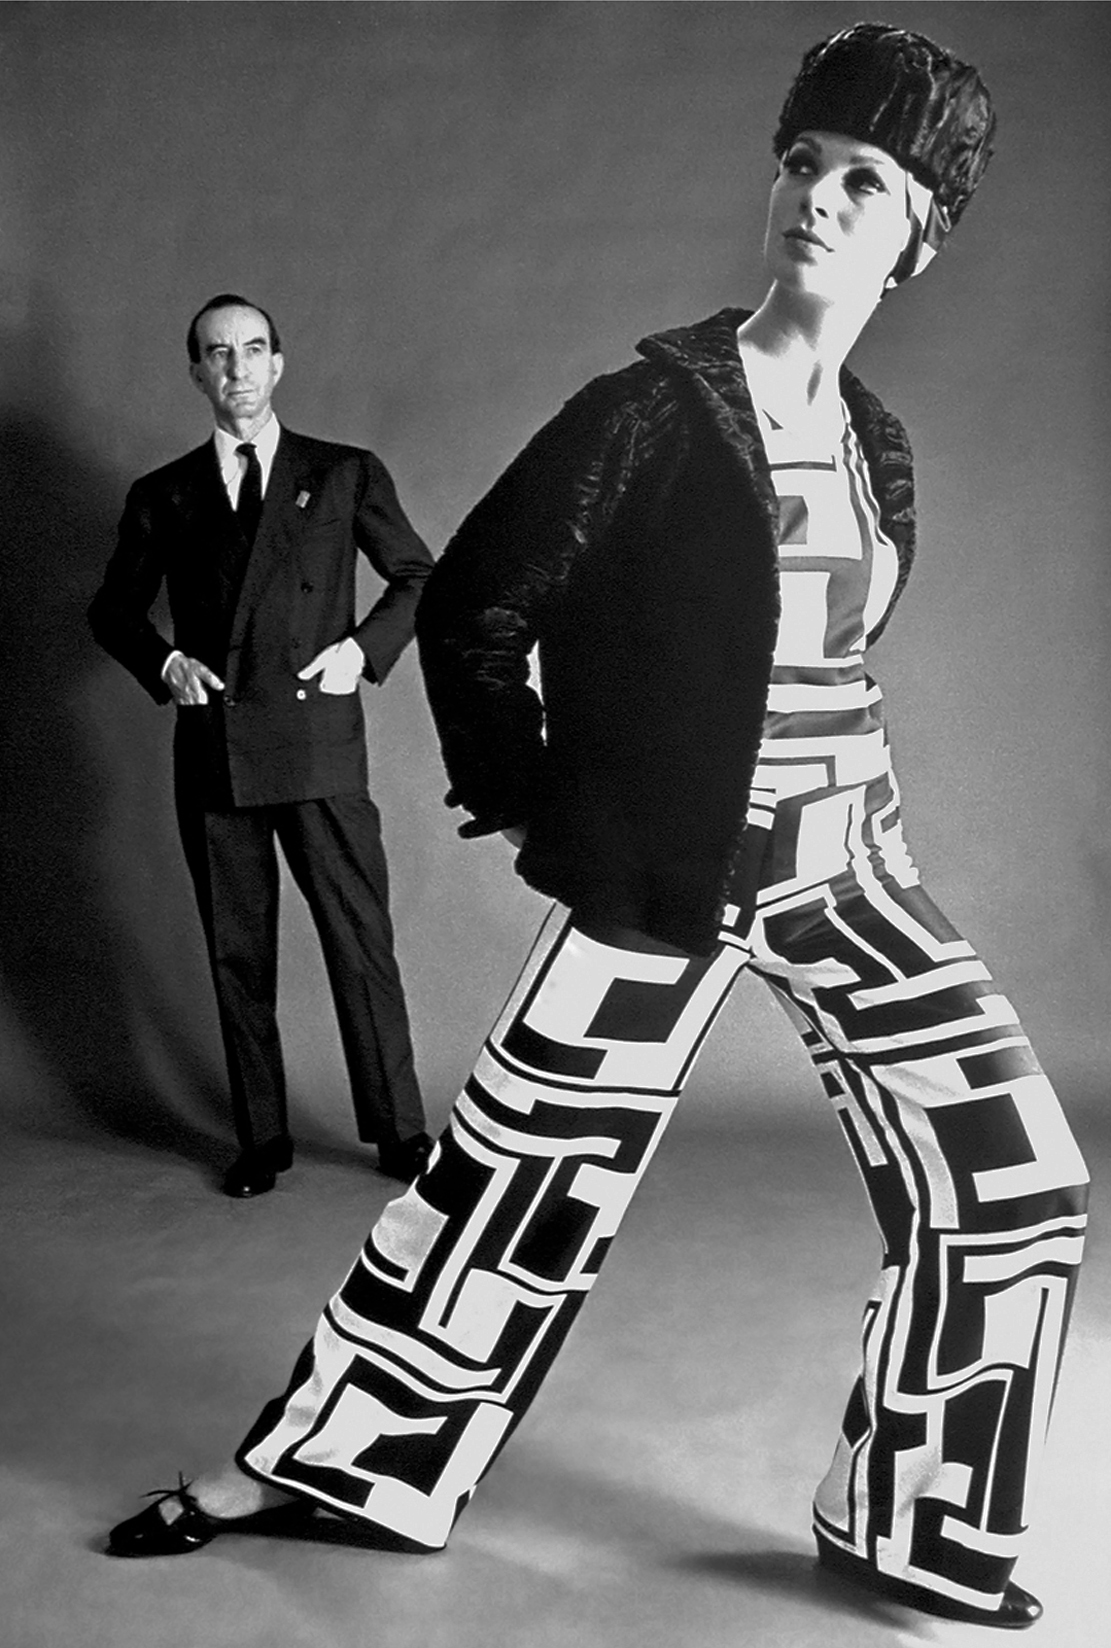 Emilio Pucci and a model wearing his Palazzo Pyjamas from his Fall/Winter 1966 collection.